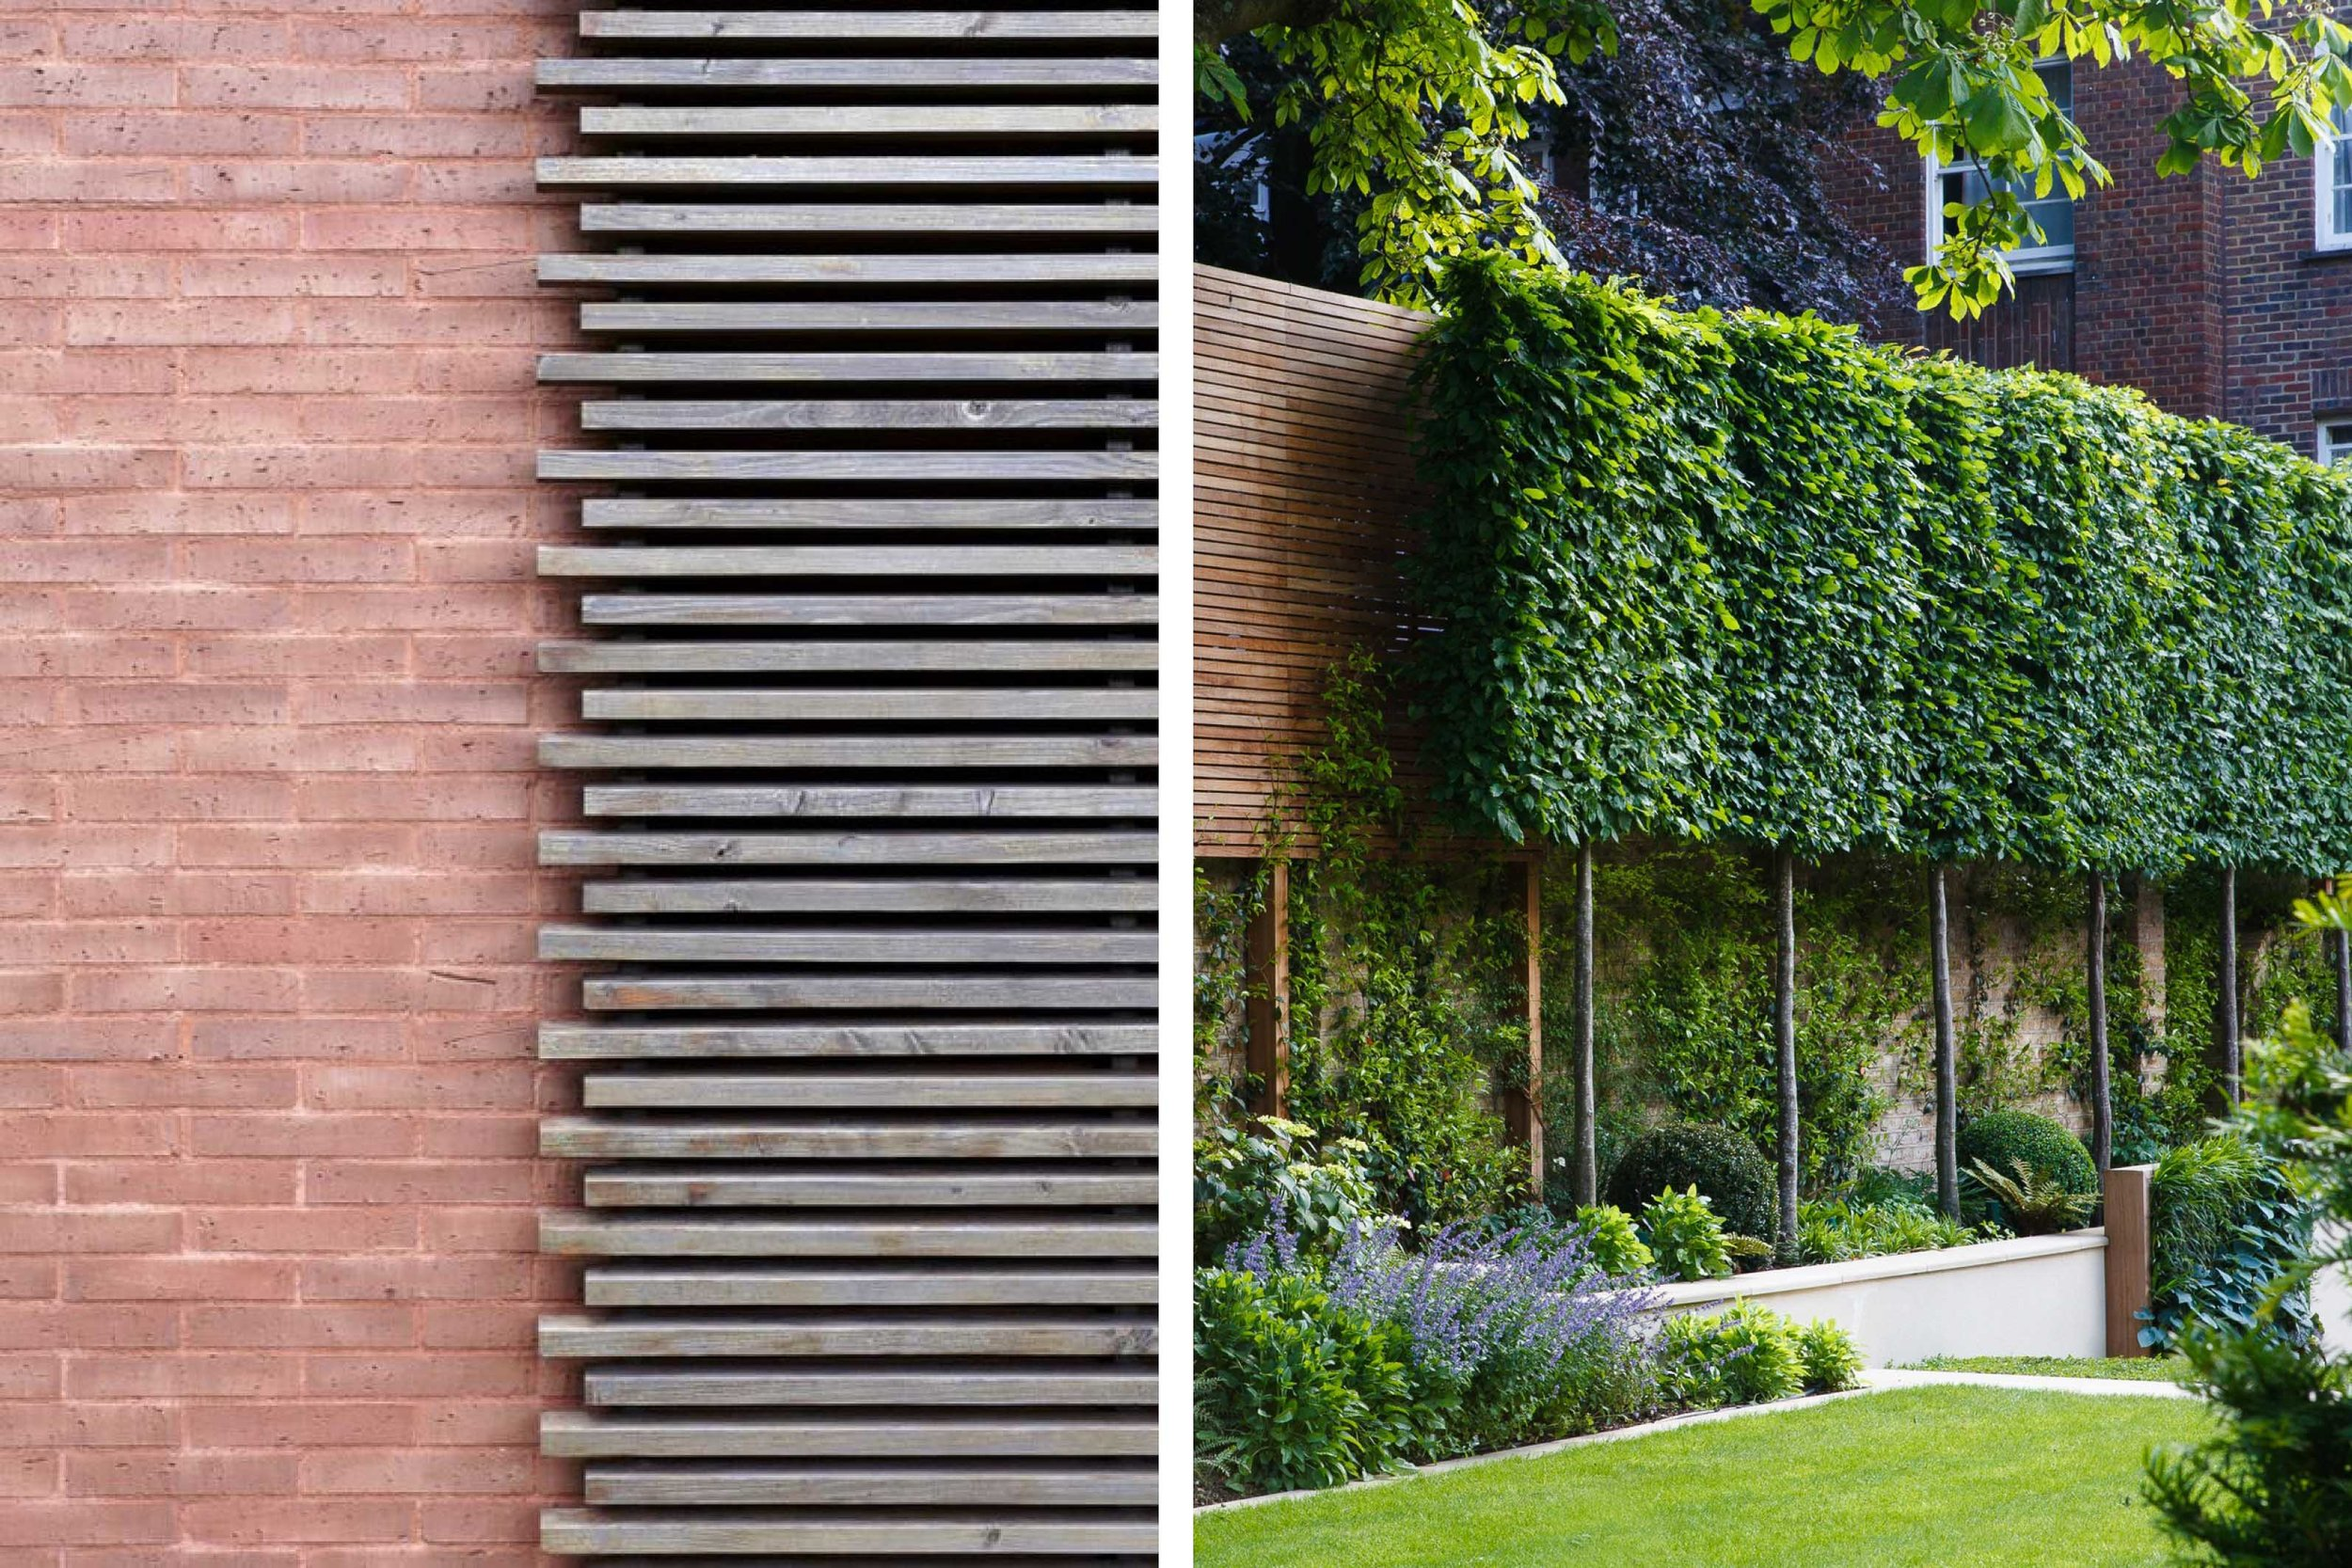 Brick and wooden cladding material reference for the Dalton Street scheme. Pleached trees will line the back garden for the privicy of neghbours and local residents.